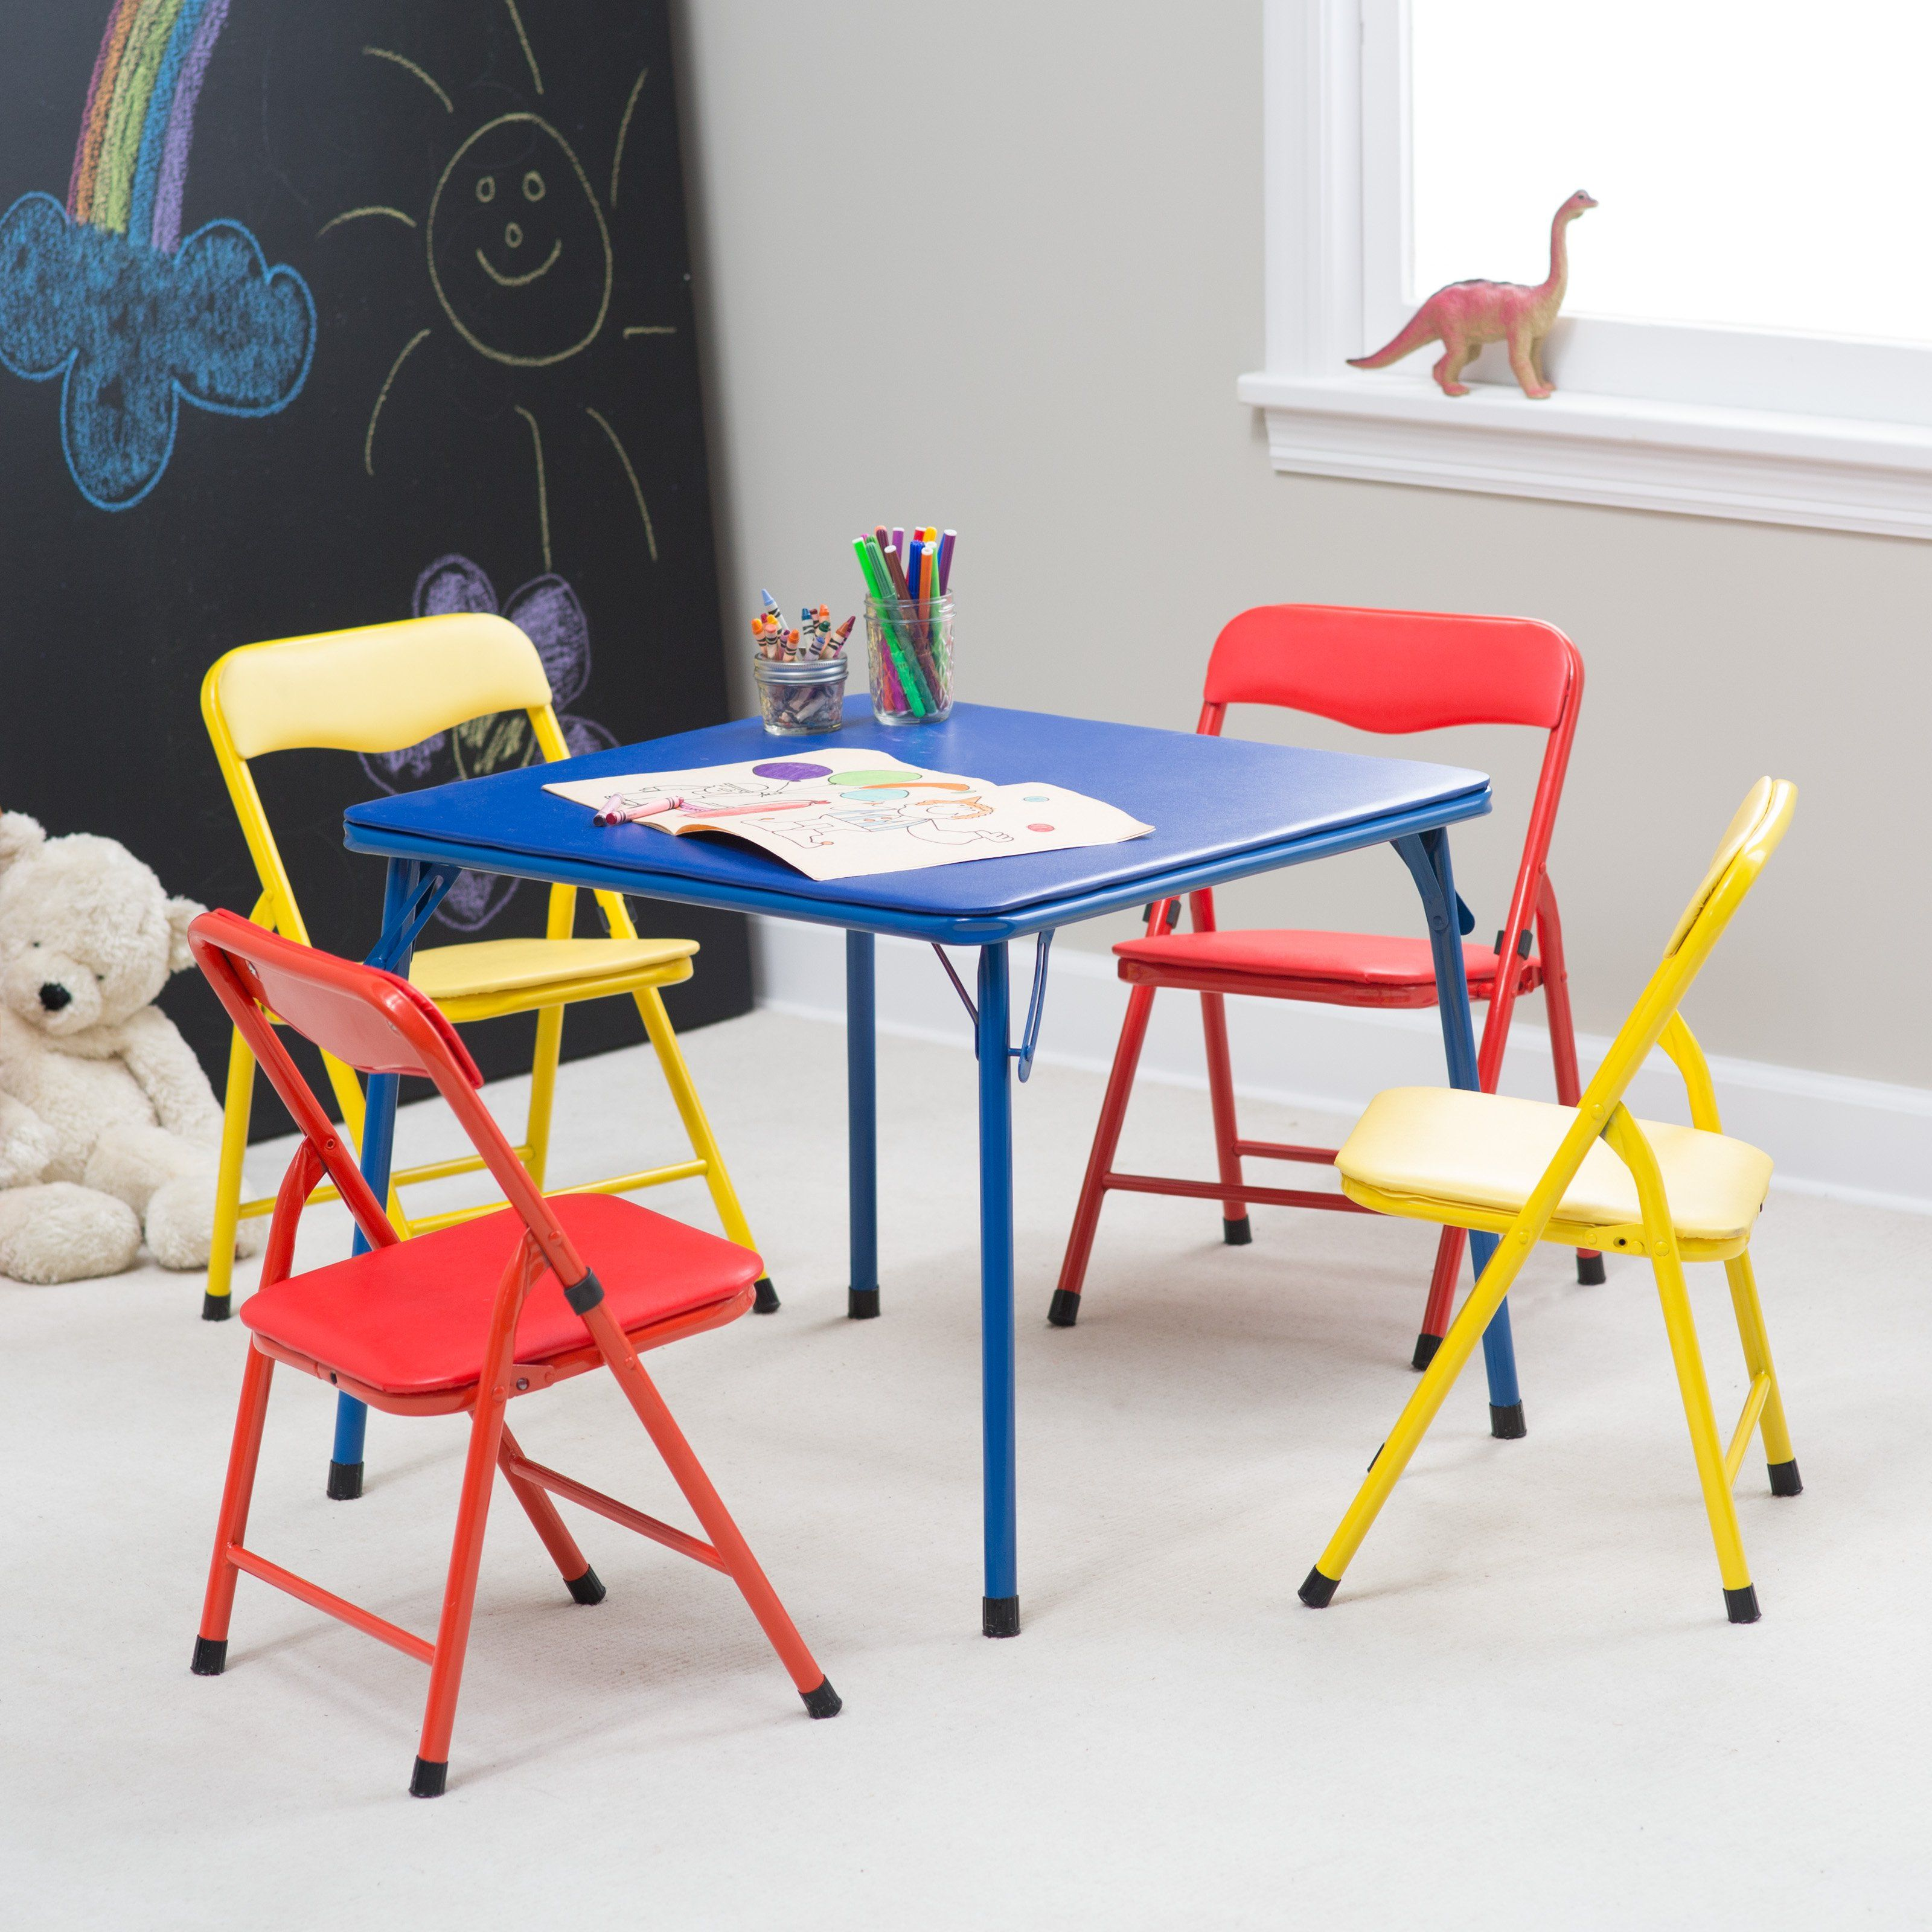 How To Buy A Folding Table And Chairs Set In 2020 Childrens Folding Table Folding Table Kids Folding Chair